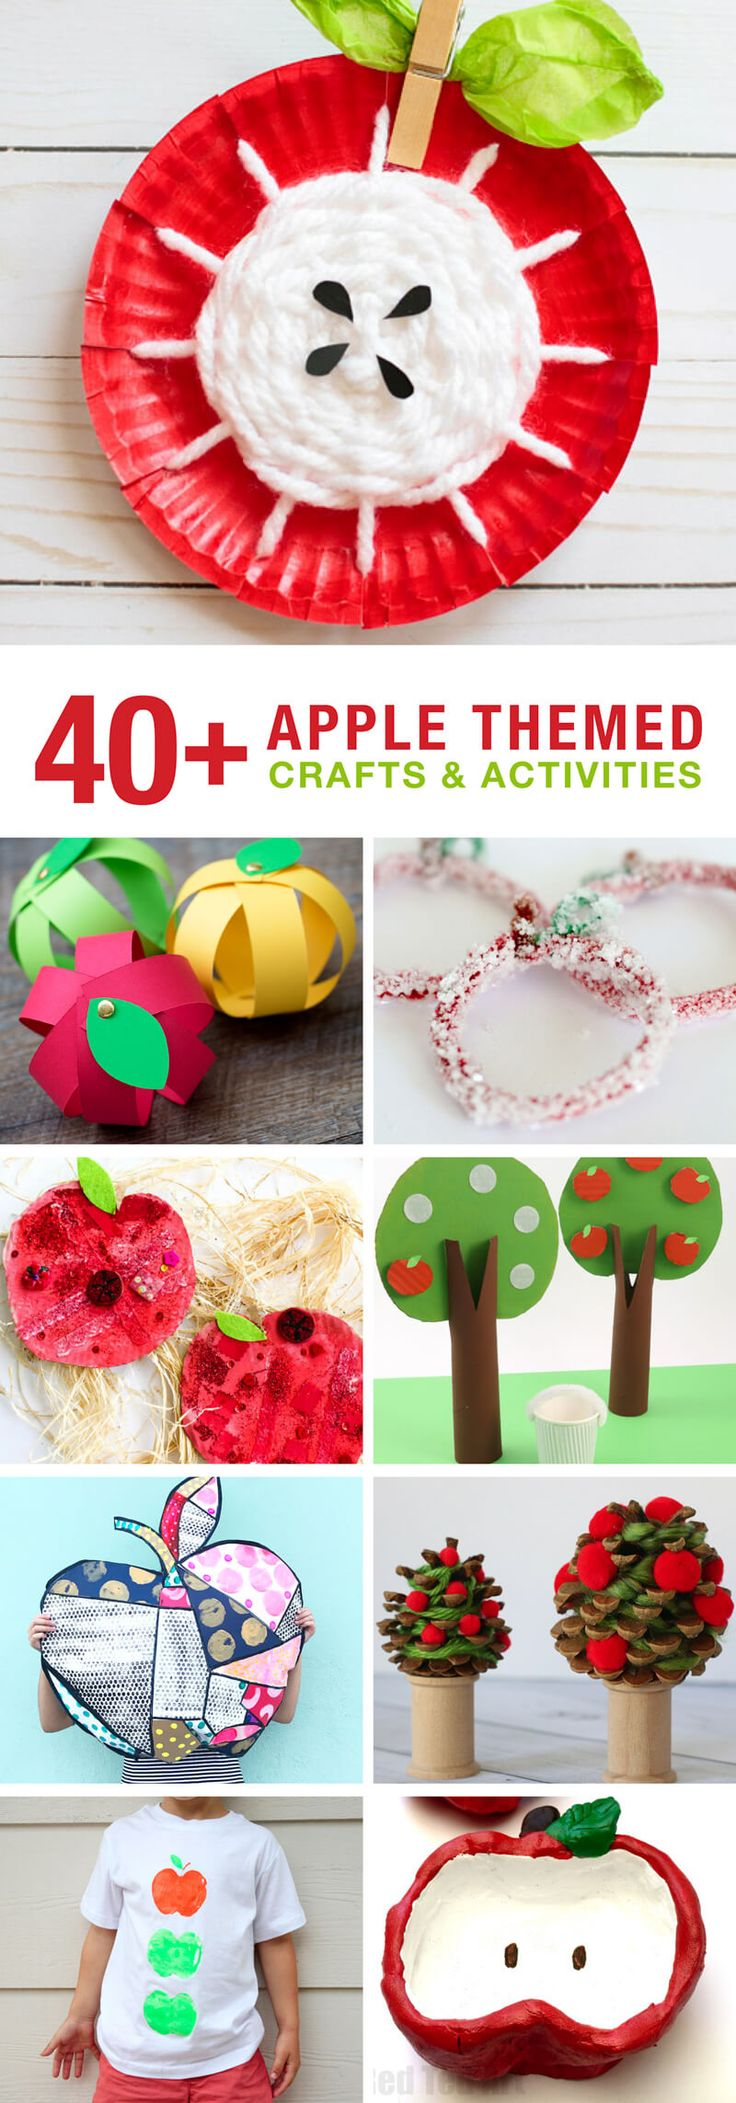 Apple themed crafts and activities for kids to get them creating, learning and playing